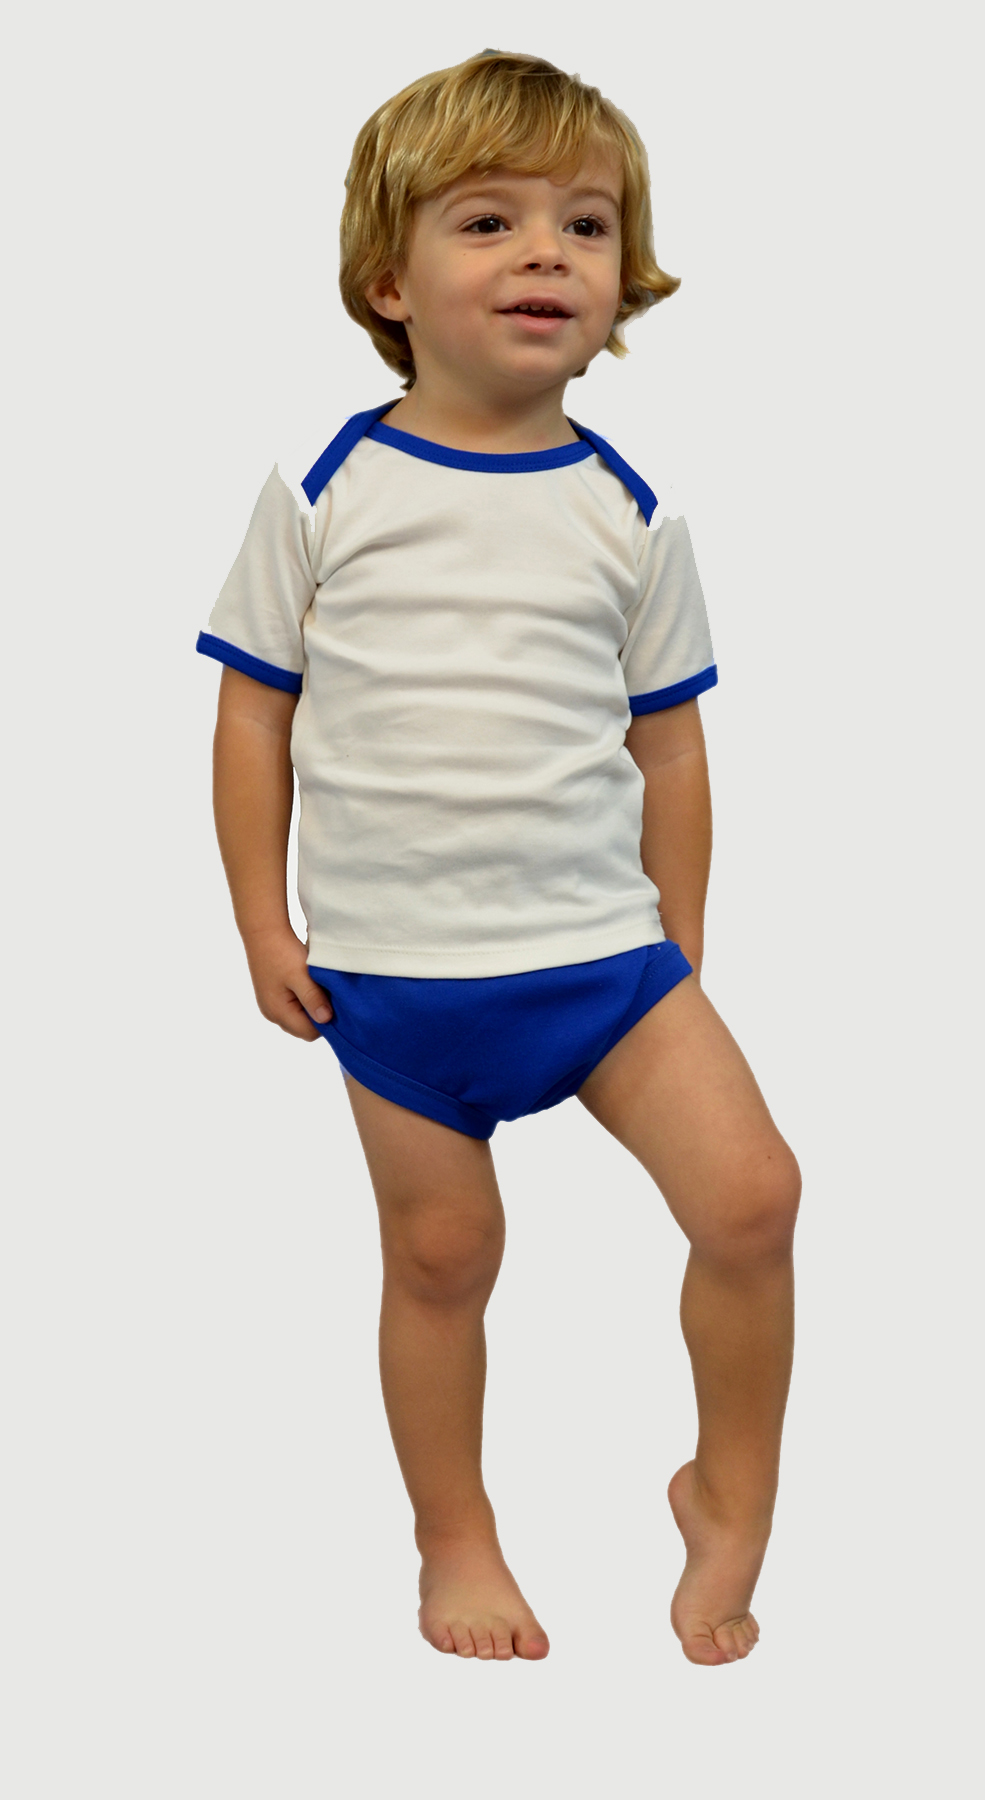 Monag 100090 - Interlock Short Sleeve Lap-T/ Diaper ...